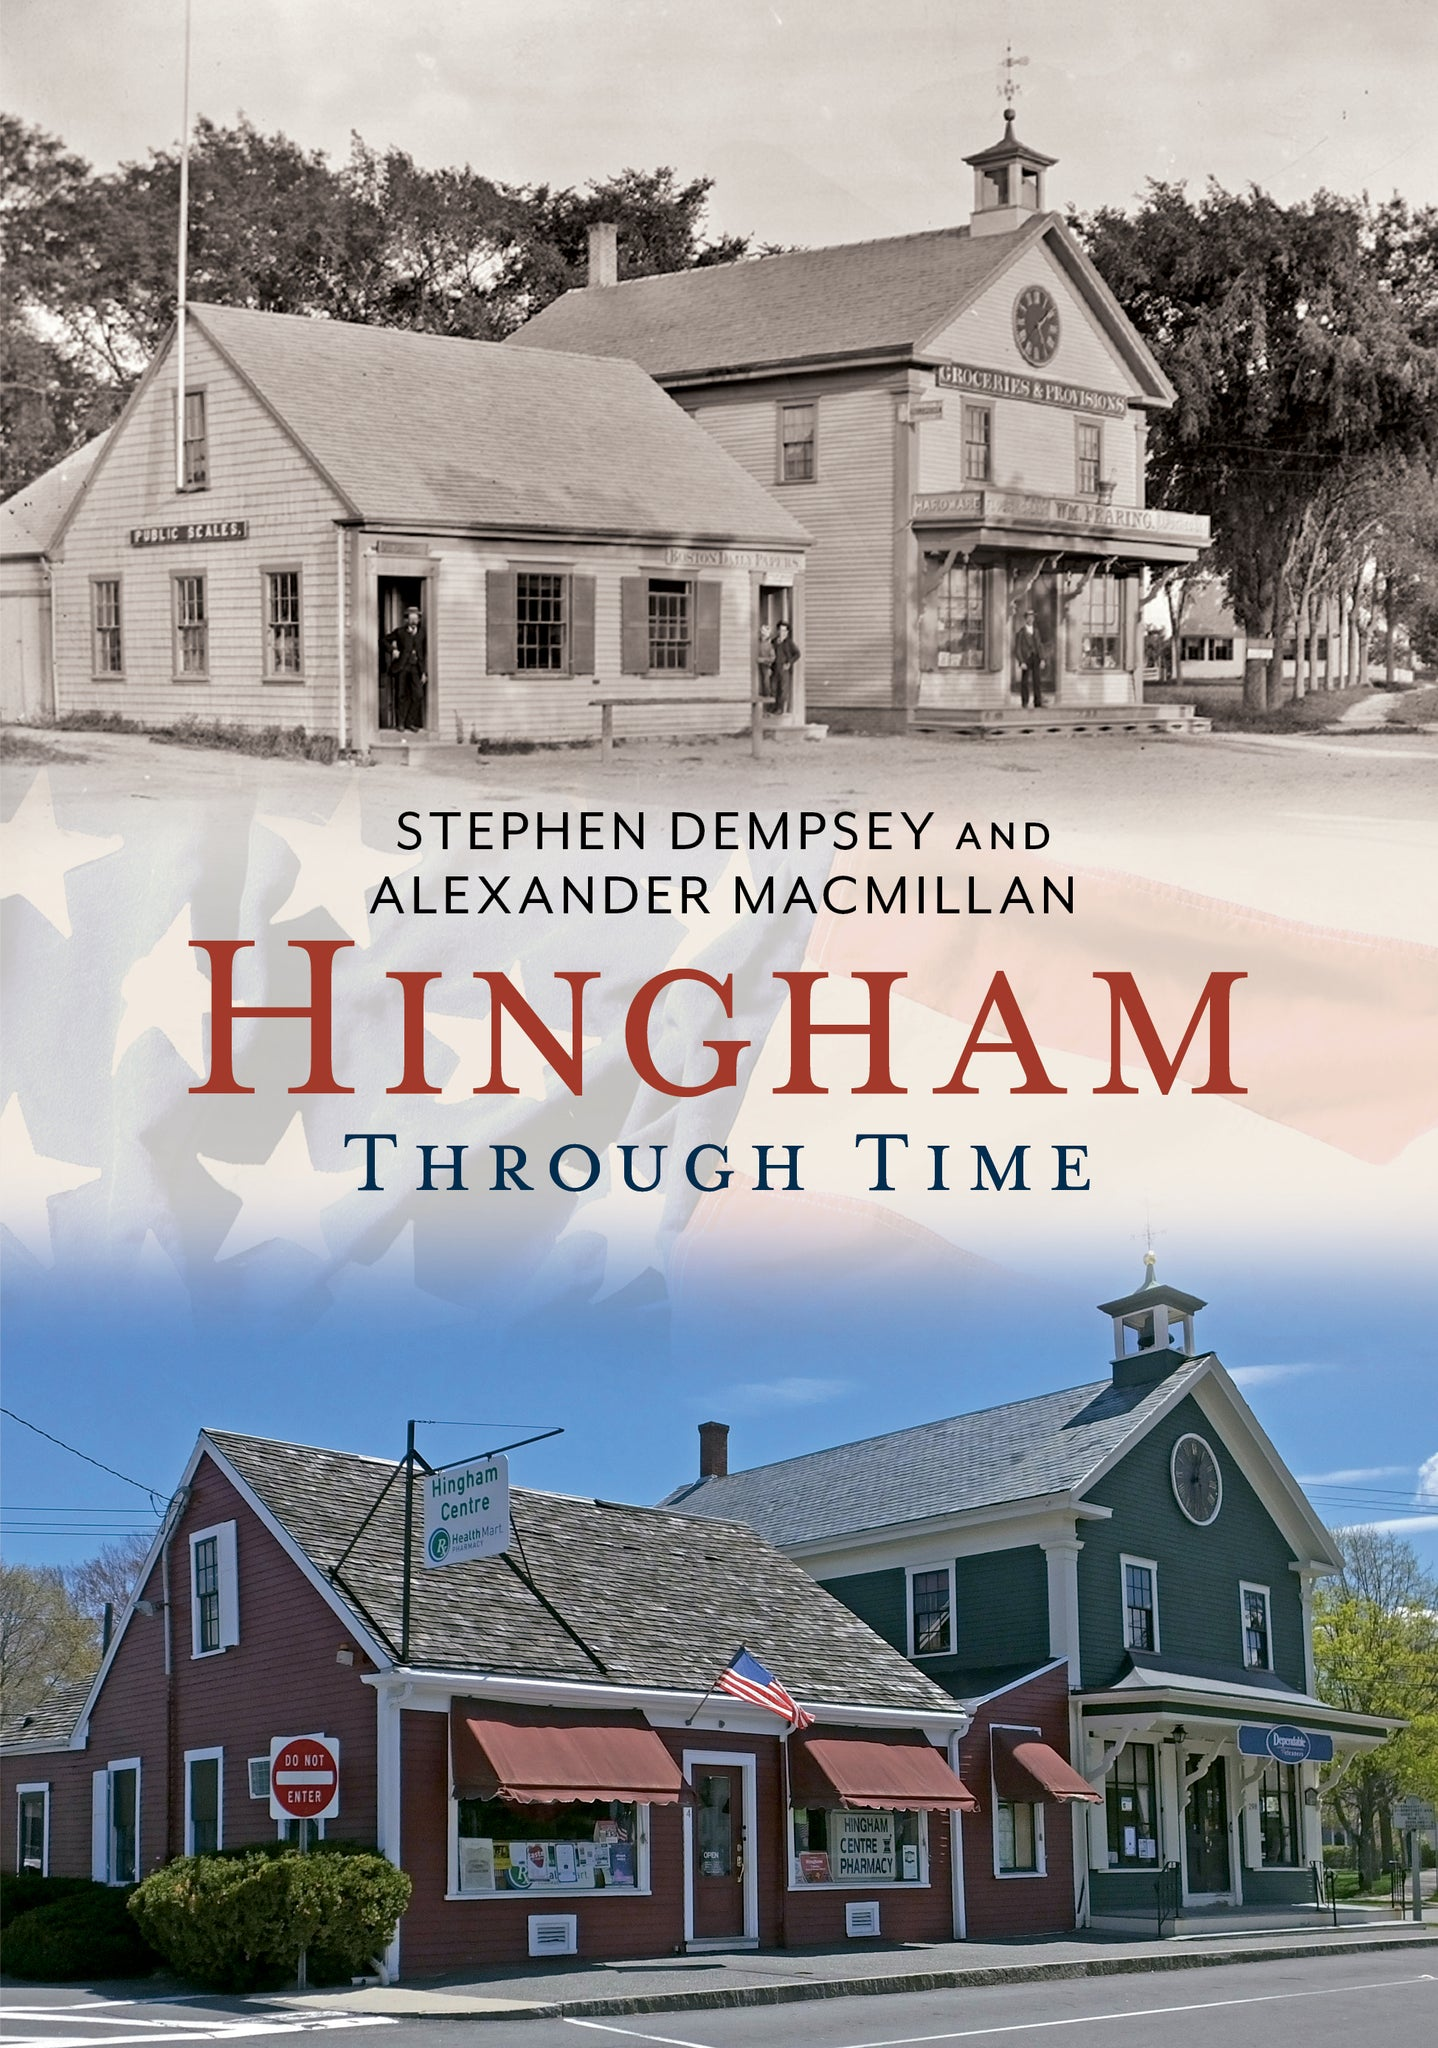 Hingham Through Time